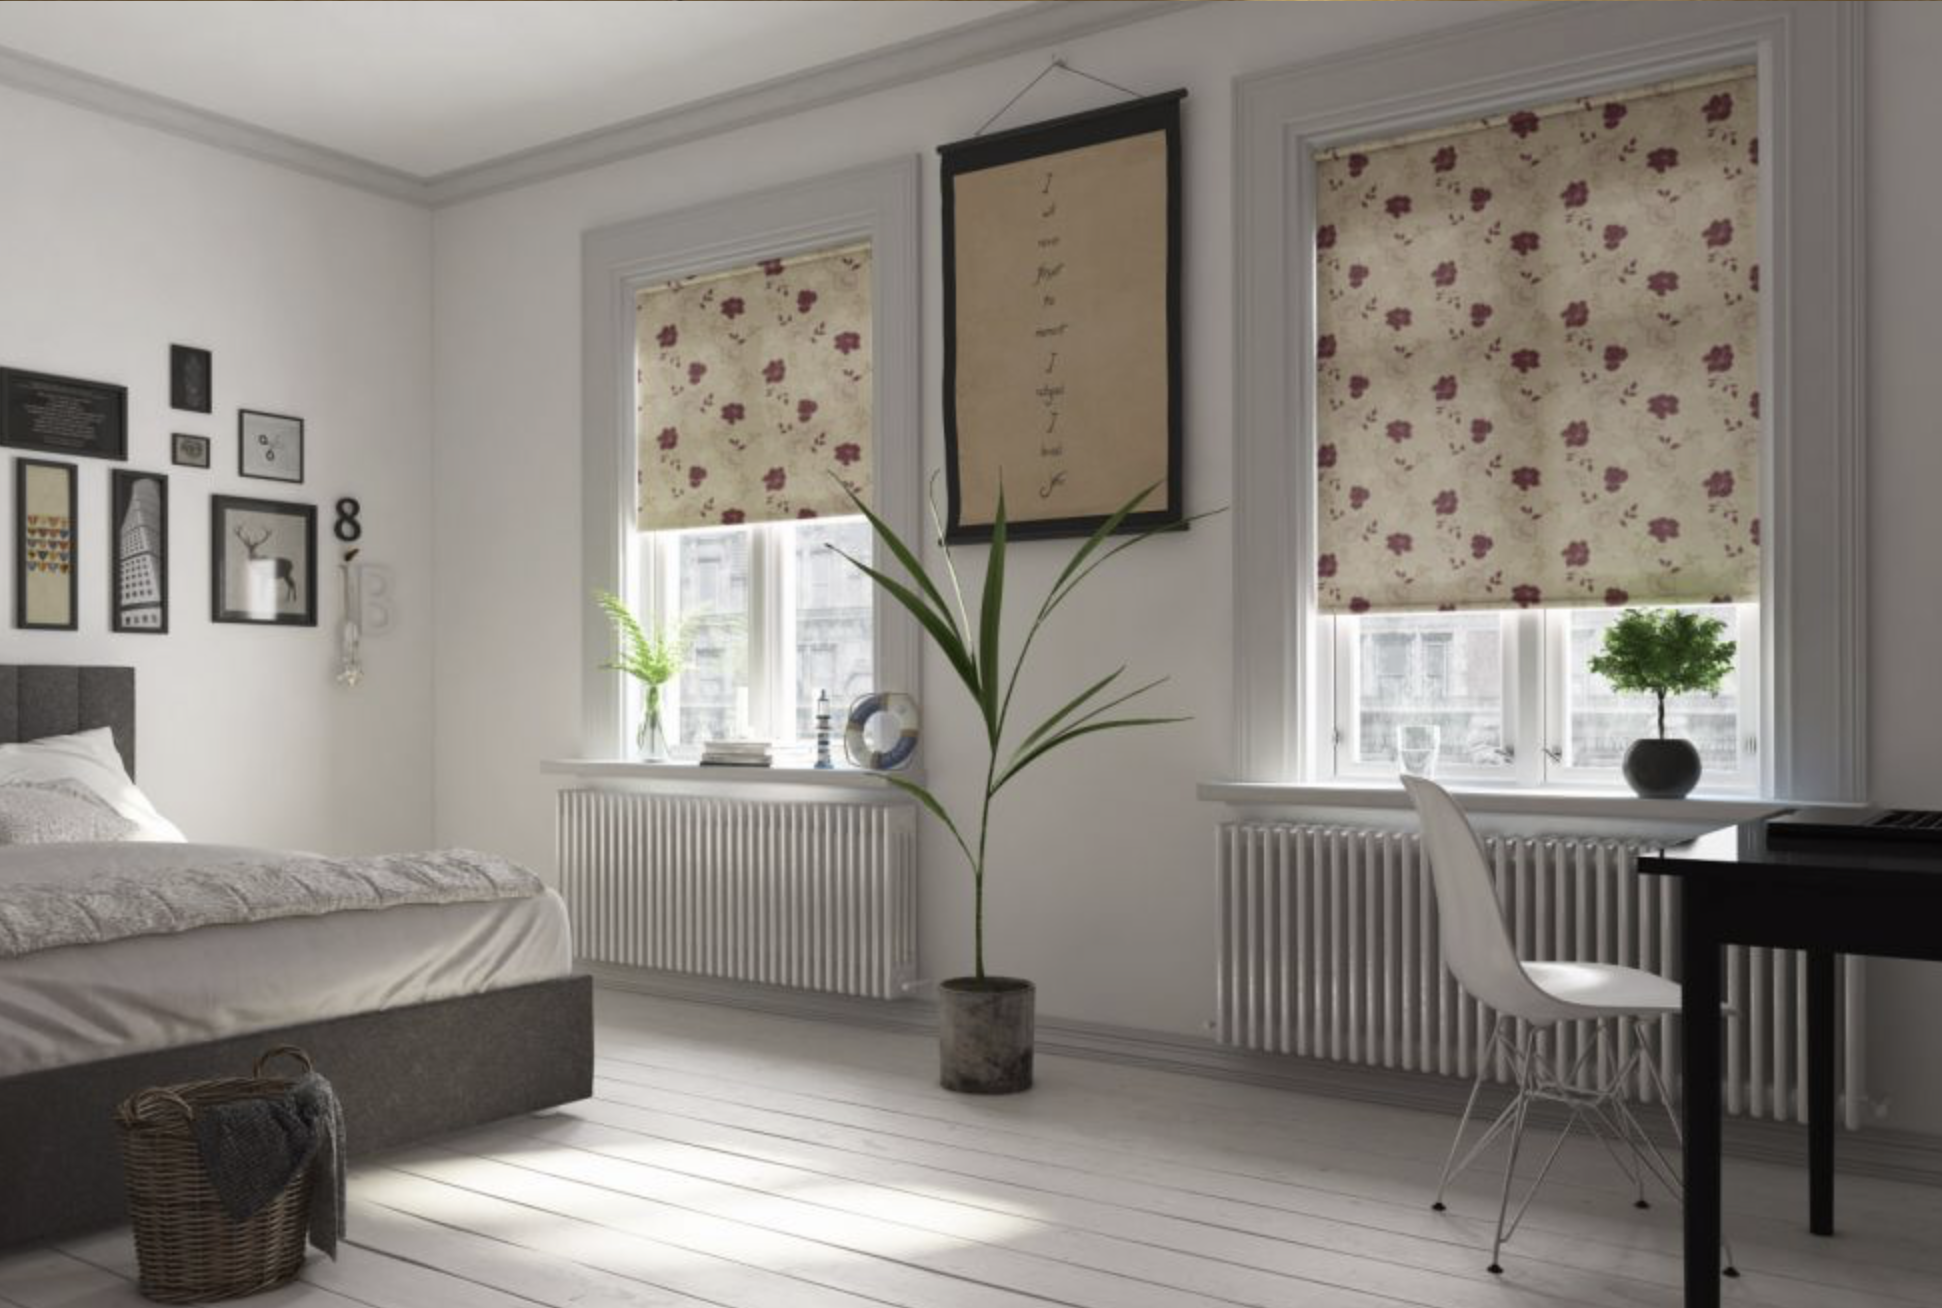 Roller blinds are easy to use. Choose your favourite material and blackout blinds are a good option